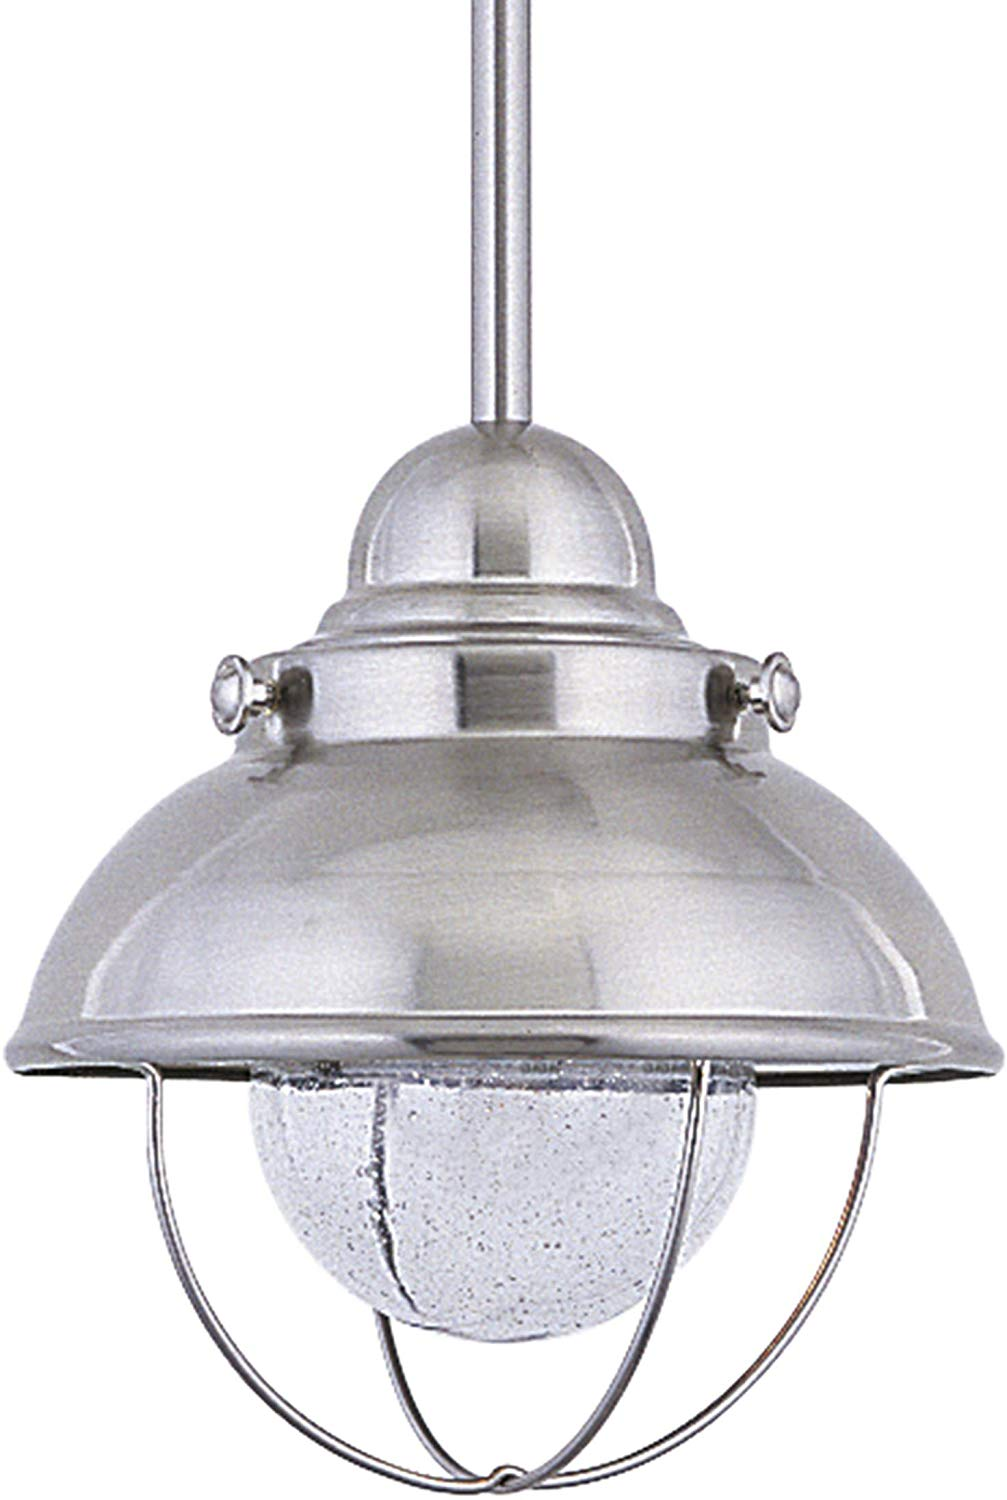 Sea Gull Lighting 615093S-98 Sebring Outdoor Pendant, 1-Light LED 9 Watts, Brushed Stainless